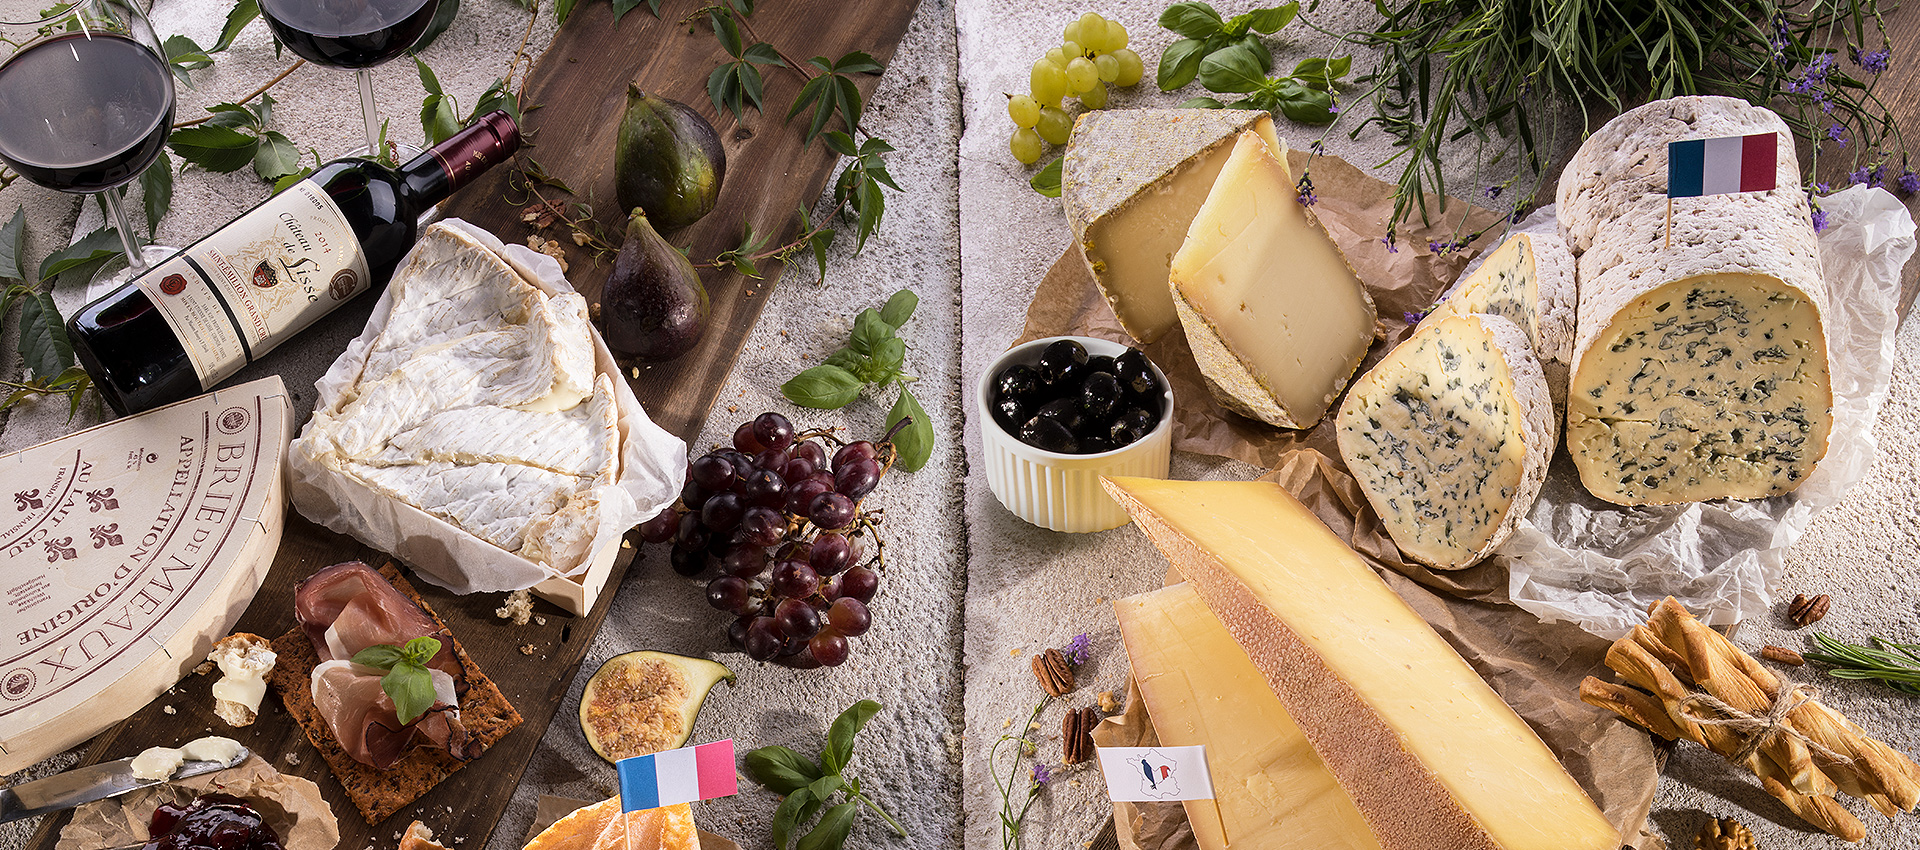 We completed food styling and photography for a variety of Czech and French cheeses and wines for Kaufland